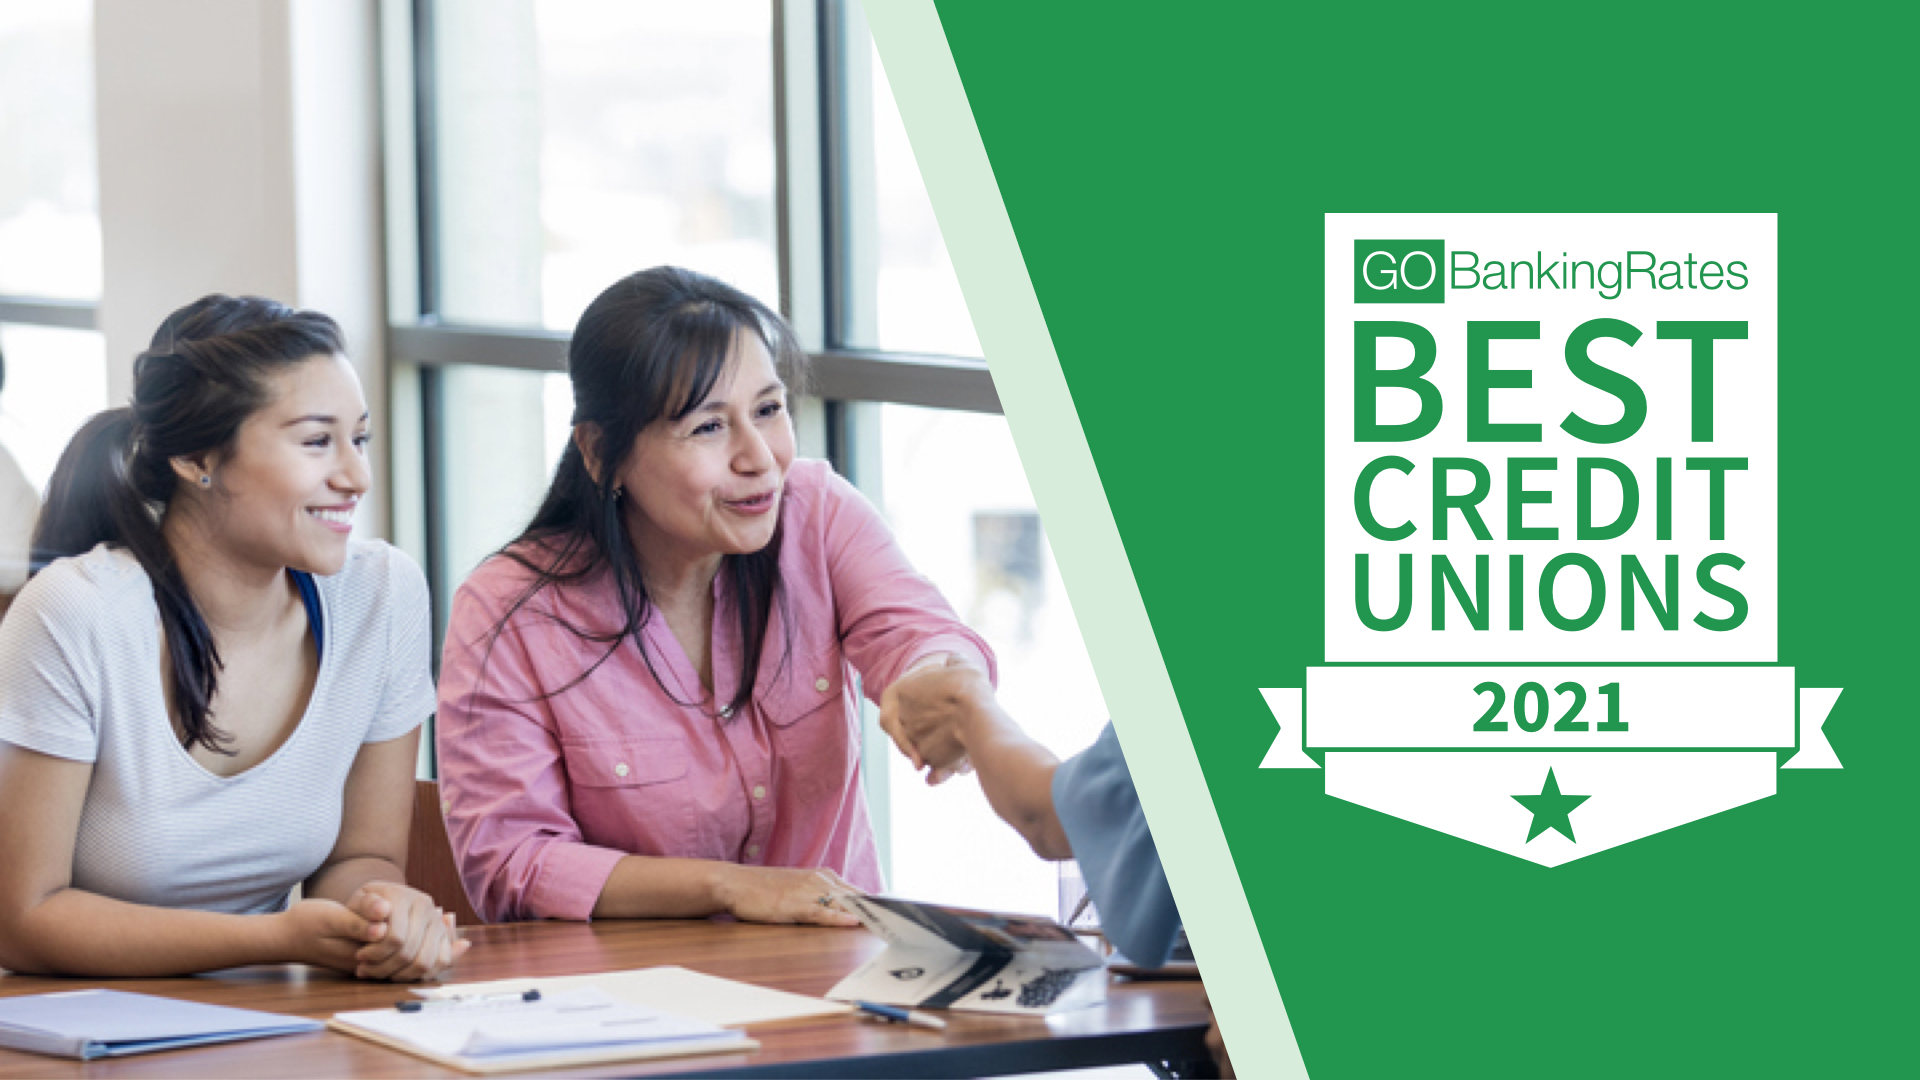 Best Credit Unions of 2021: Offering Advantages Unique From Larger Banks